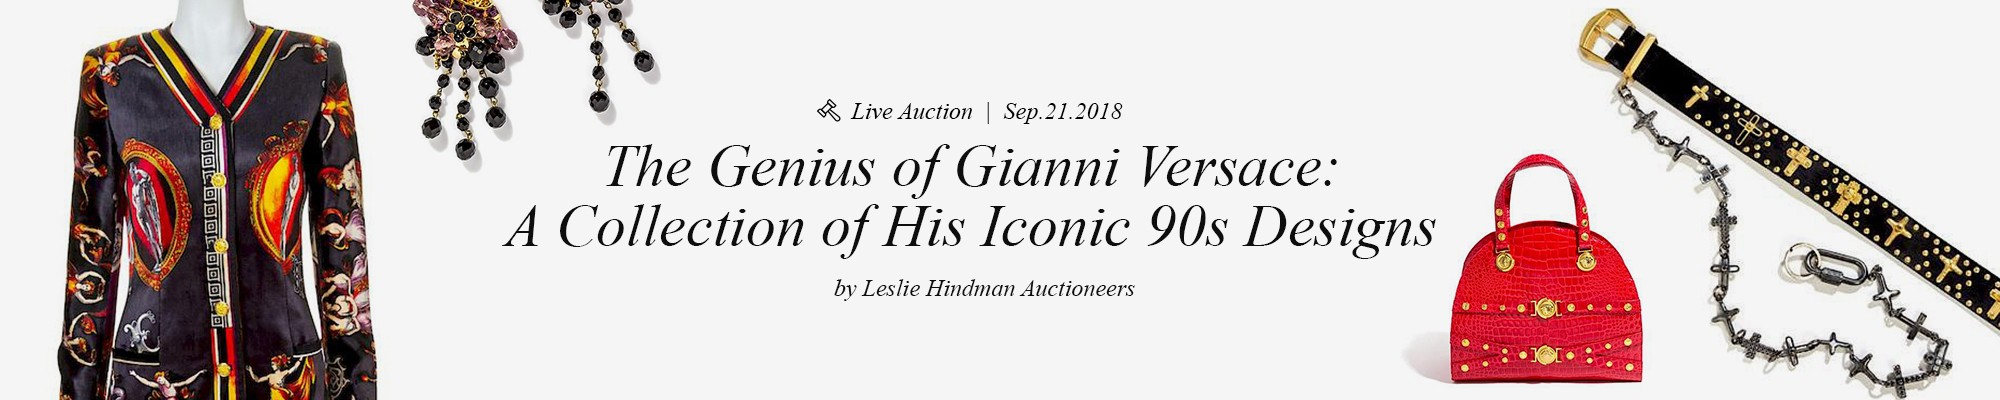 The Genius of Gianni Versace: A Collection of His Iconic 90s Designs -  Leslie Hindman Auctioneers